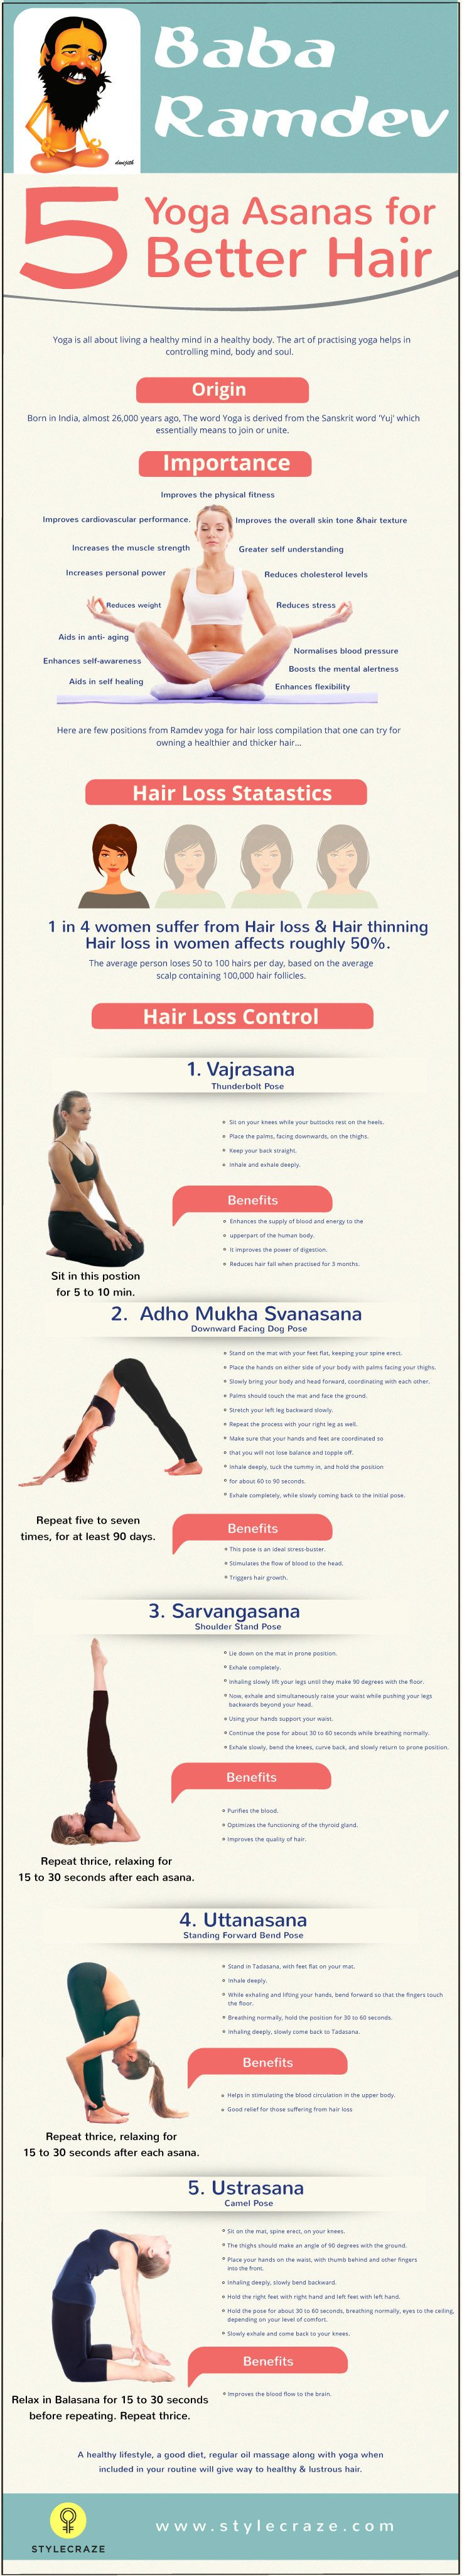 Here Are Few Asanas From Ramdev Yoga For Hair Loss Compilation That One Can Try Healthy And Strong